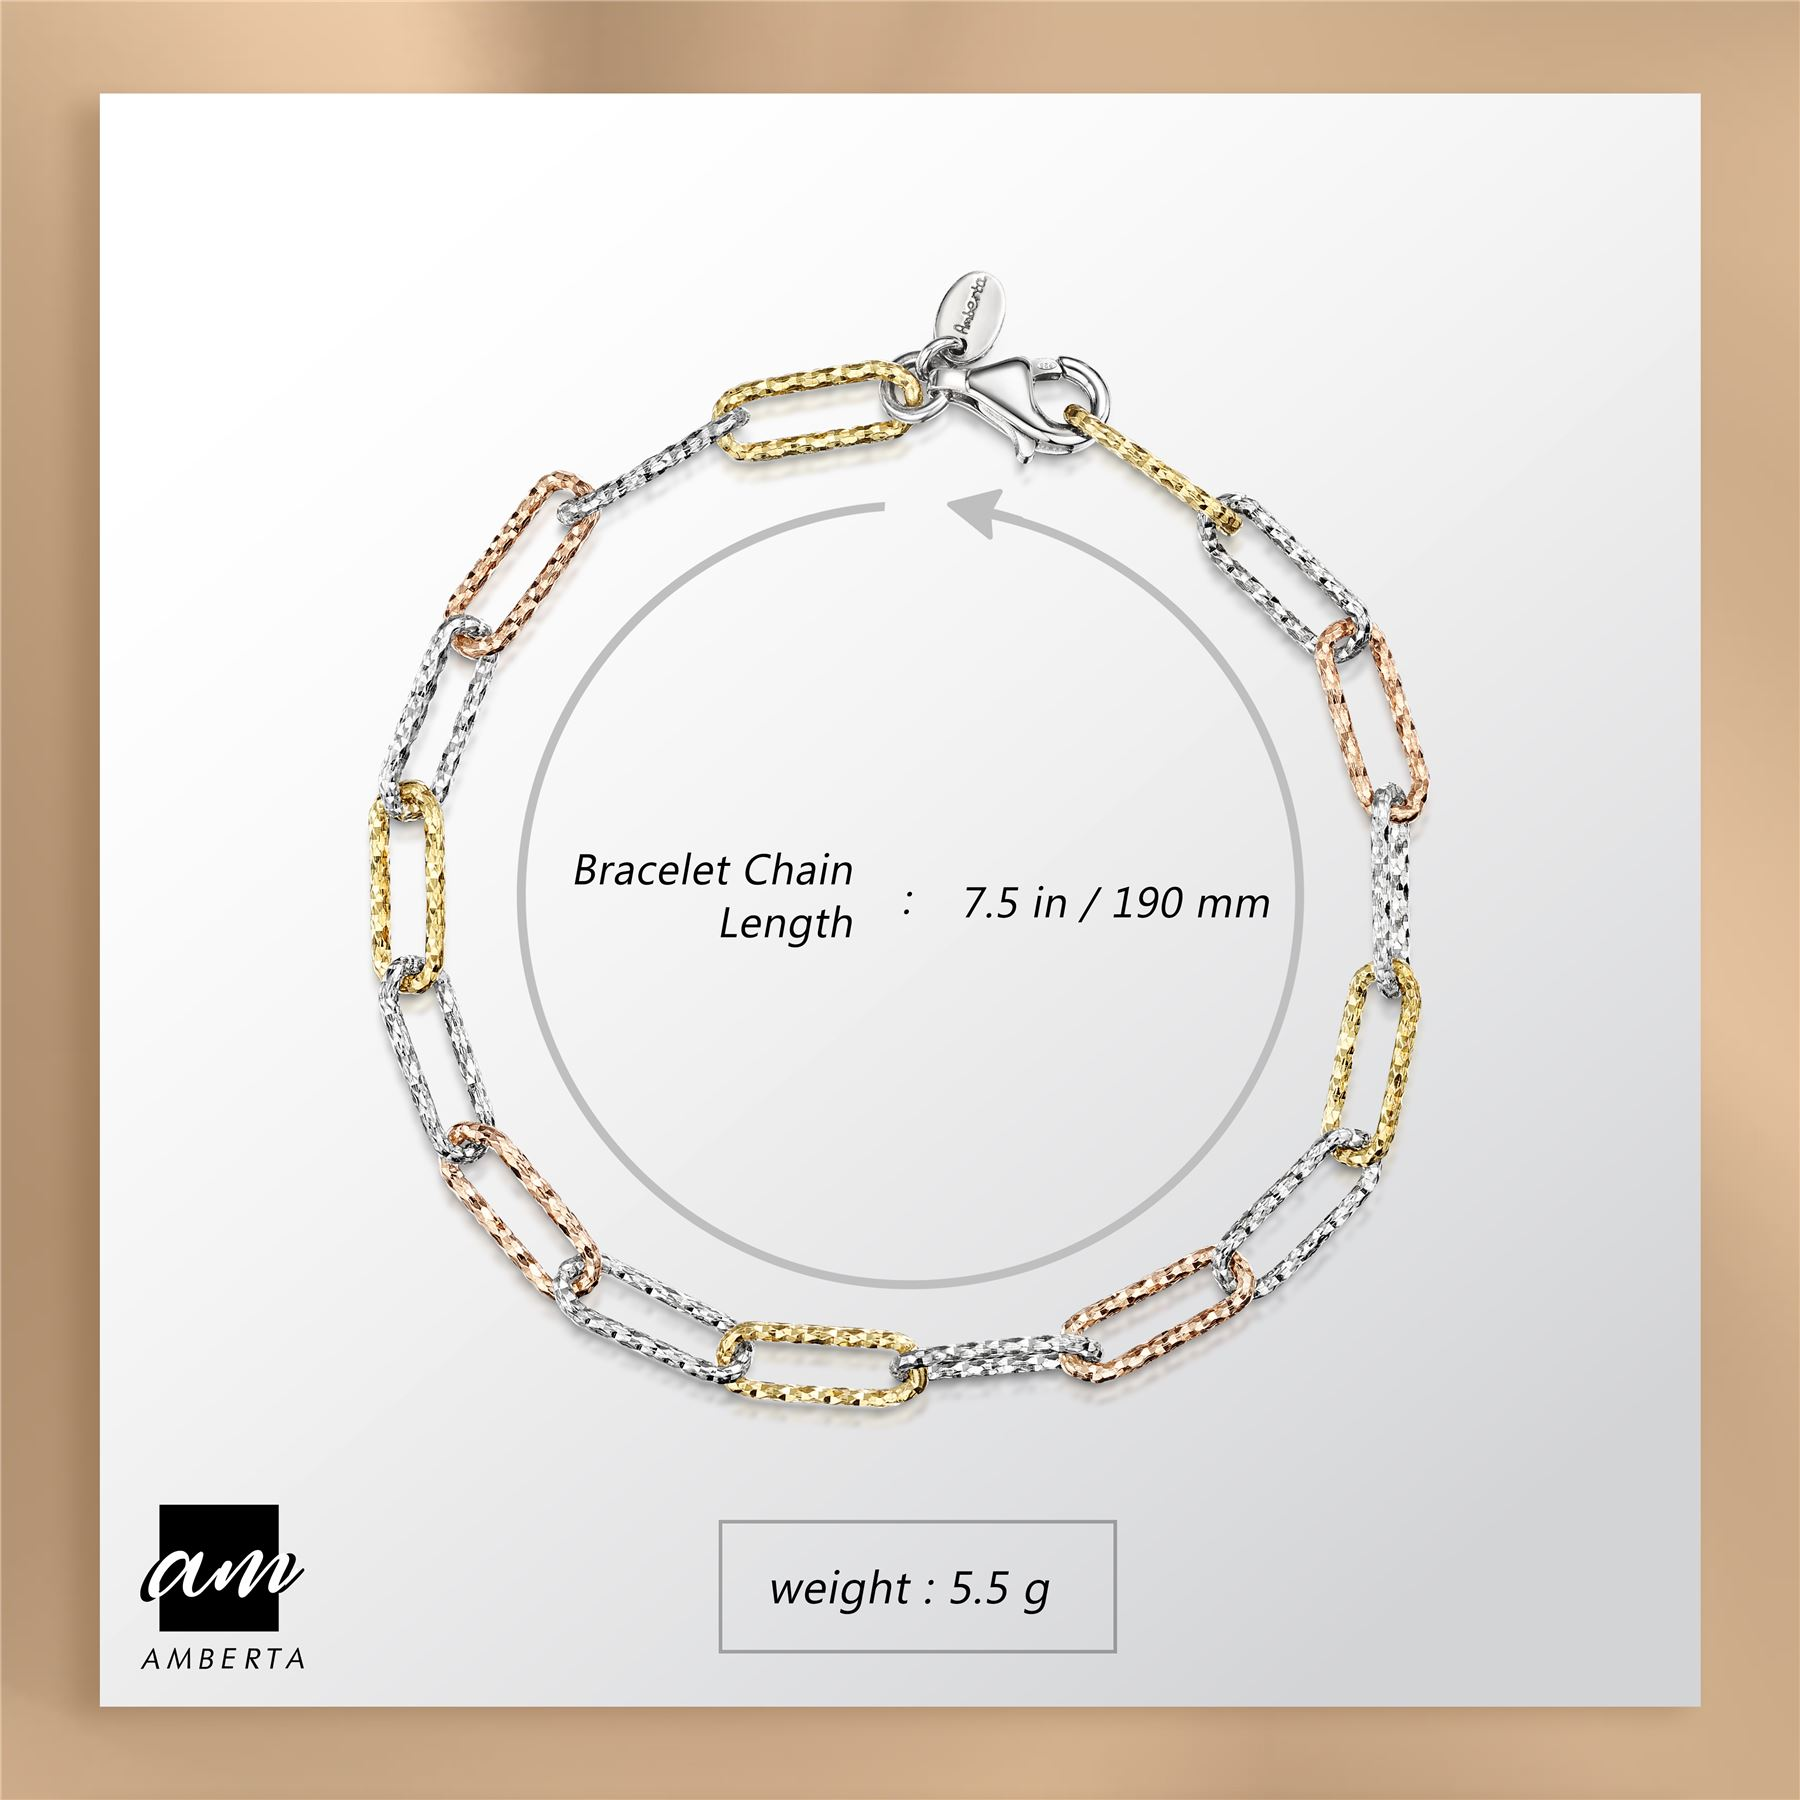 Amberta-Genuine-Real-925-Sterling-Silver-Chain-Bracelet-for-Women-from-Italy miniature 3